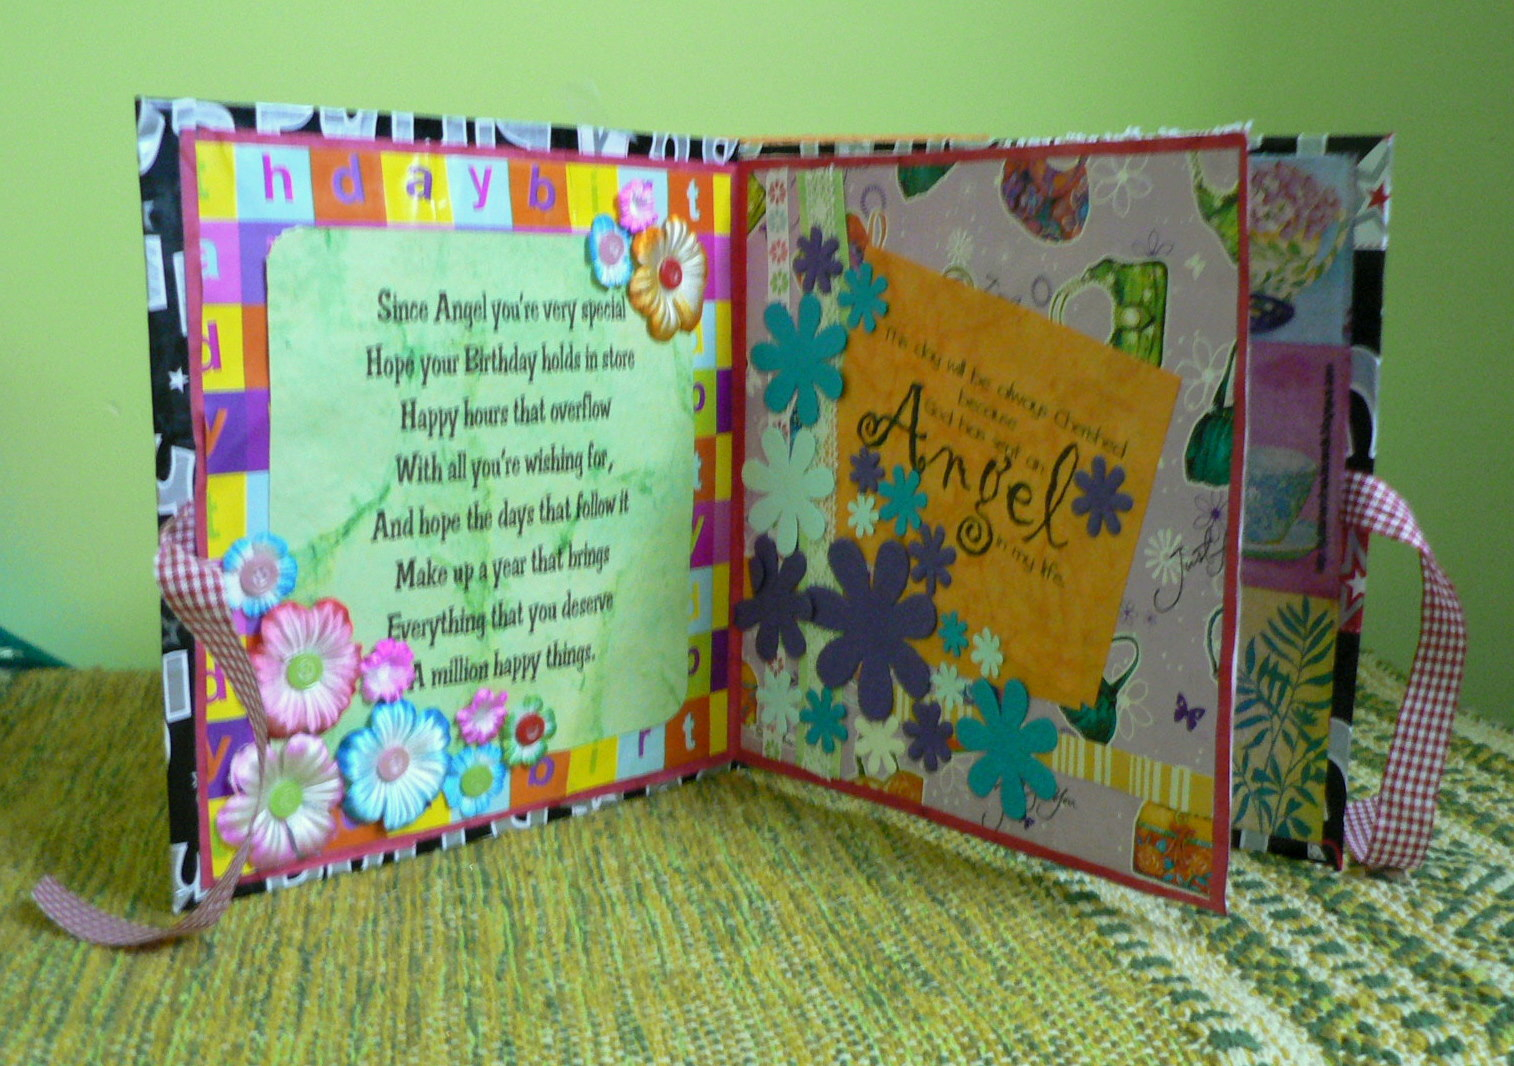 Birthday Greeting Card Ideas 30 Cool Handmade Card Ideas For Birthday Christmas And Other